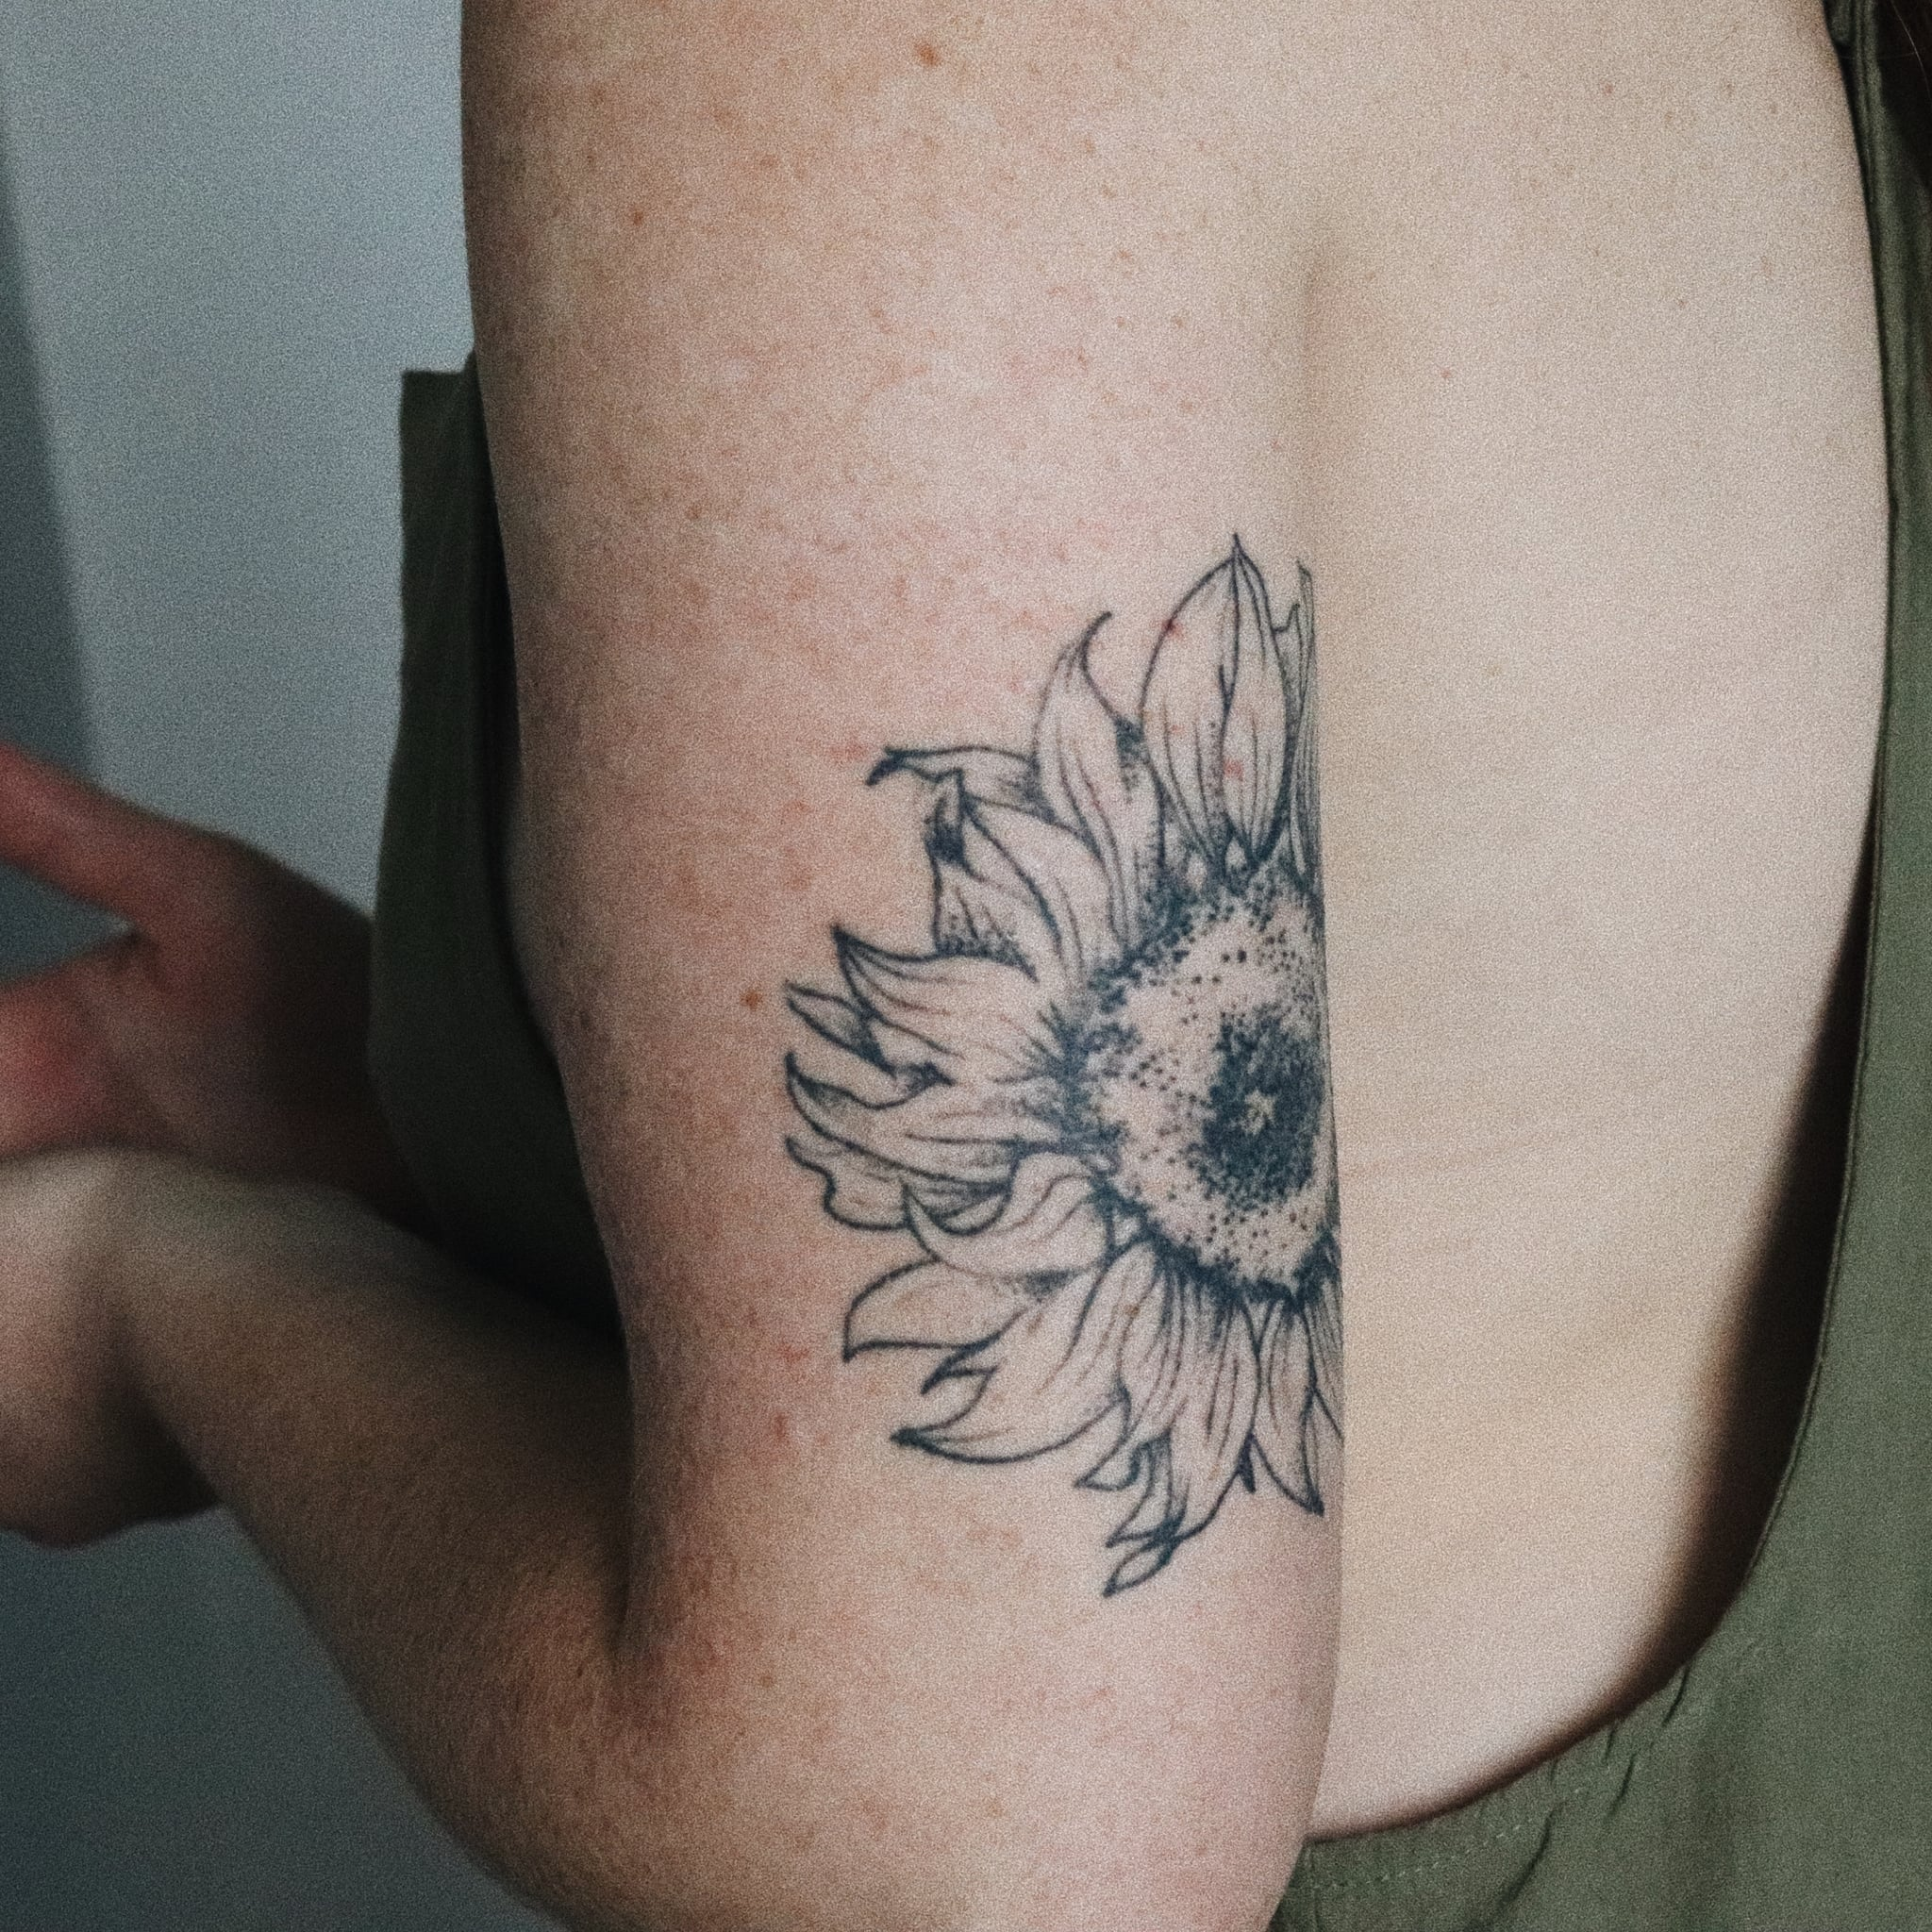 What To Do When A Tattoo Gets Infected Questions And Tips Popsugar Beauty How to know if something isn't right. what to do when a tattoo gets infected